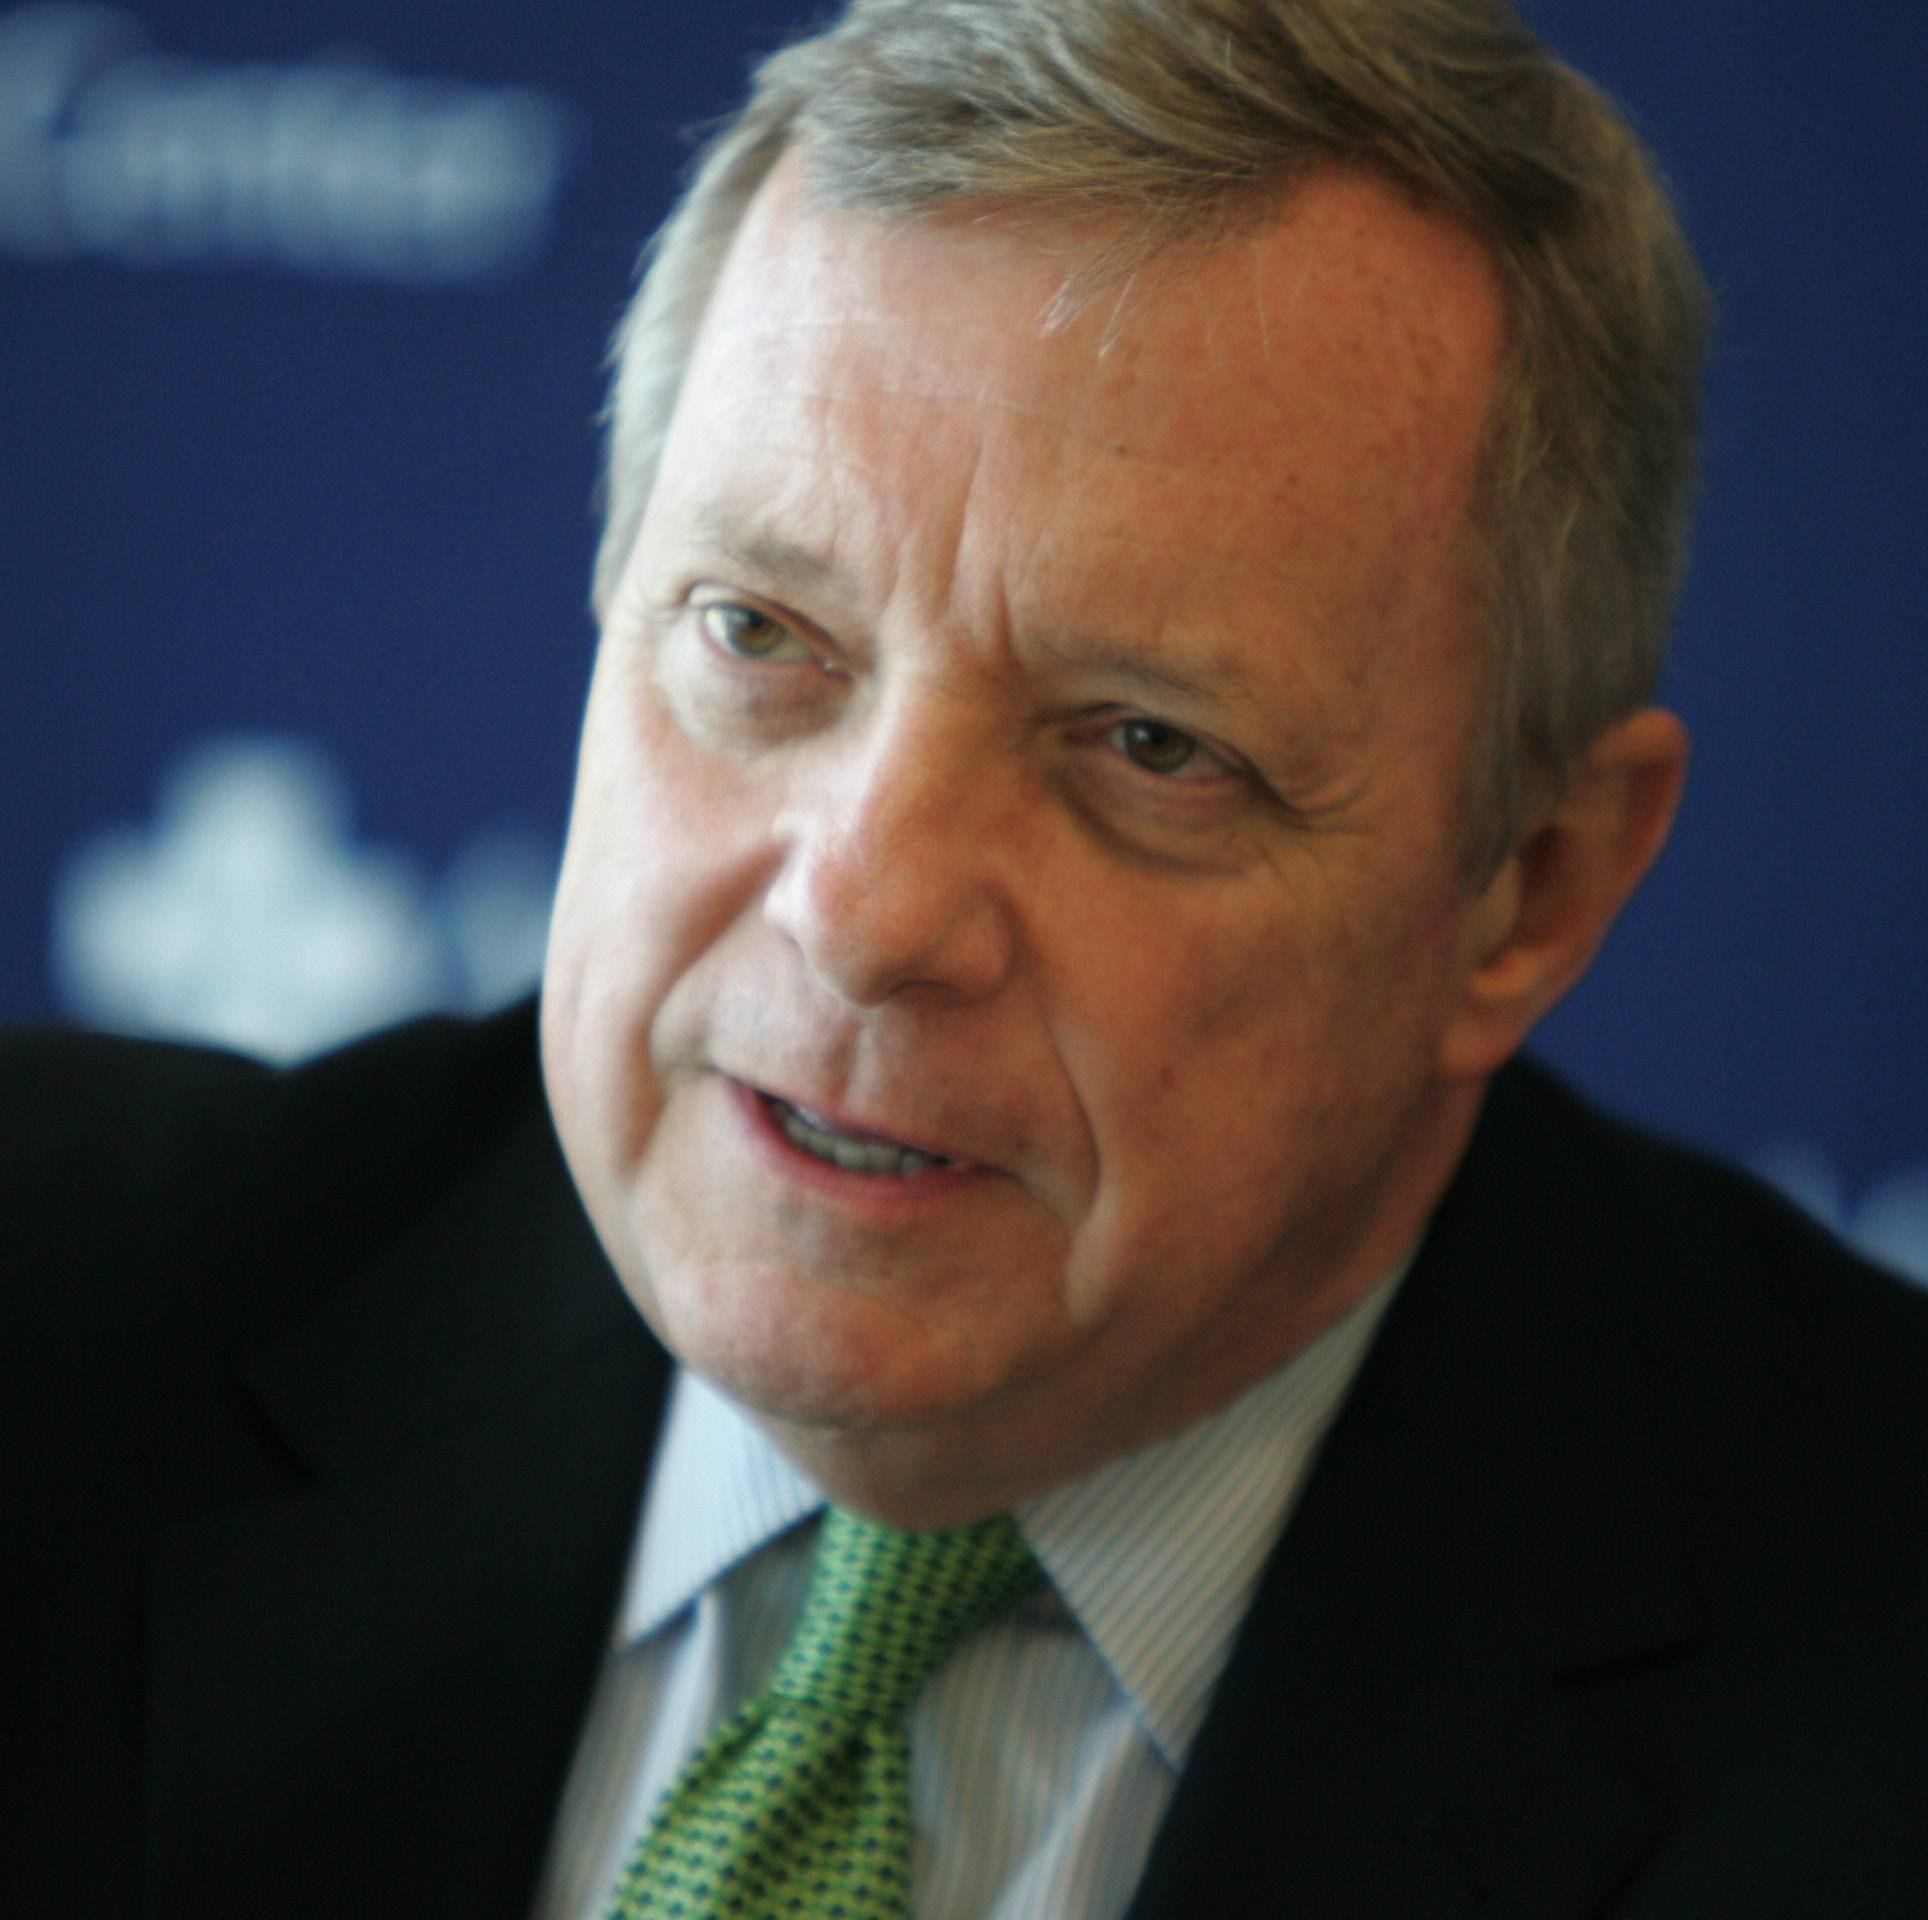 Illinois Senator Richard Durbin is among senators endorsing the plan.